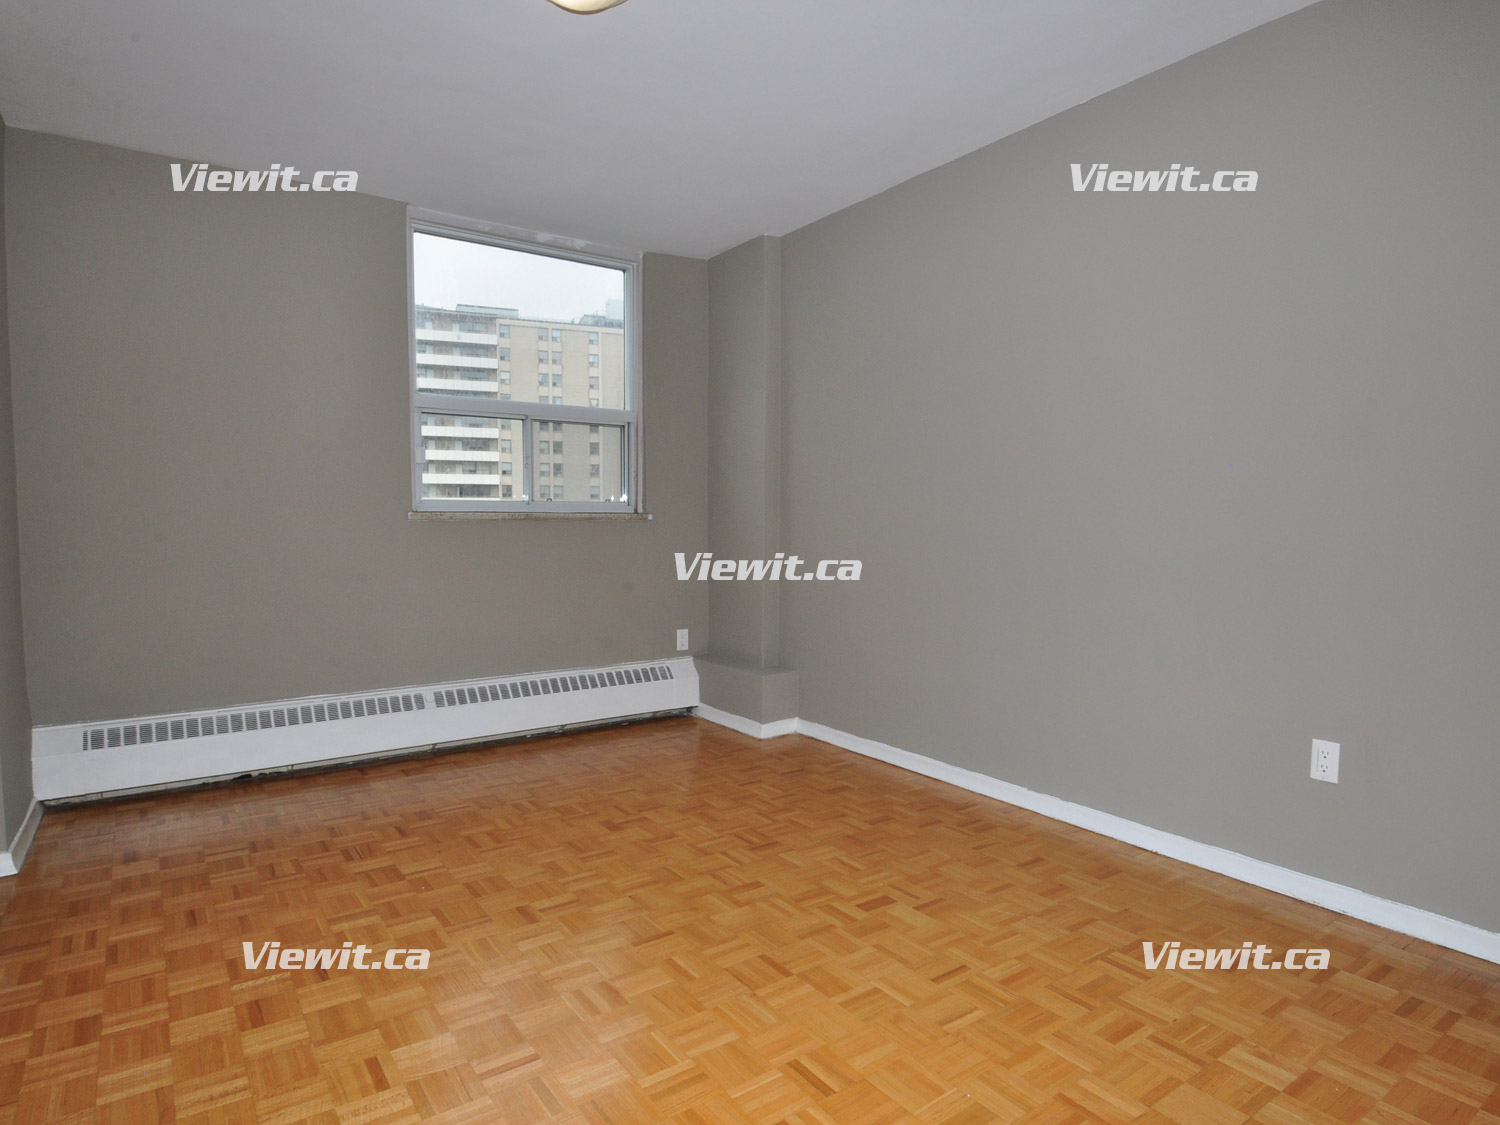 100 Rowena Dr North York On 2 Bedroom For Rent